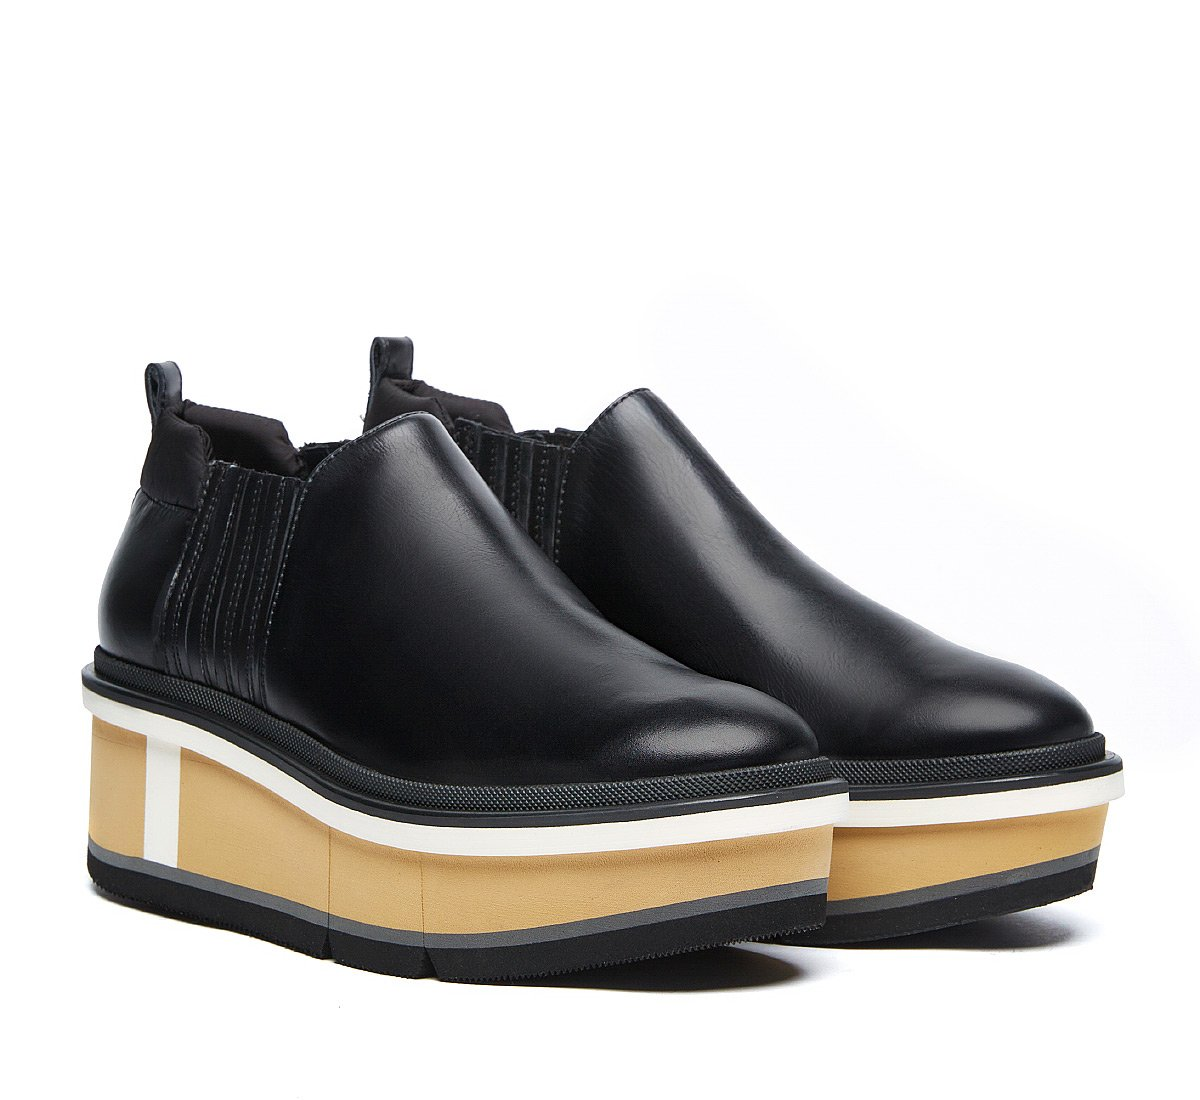 Fabi MICRO lace-ups in soft calf leather